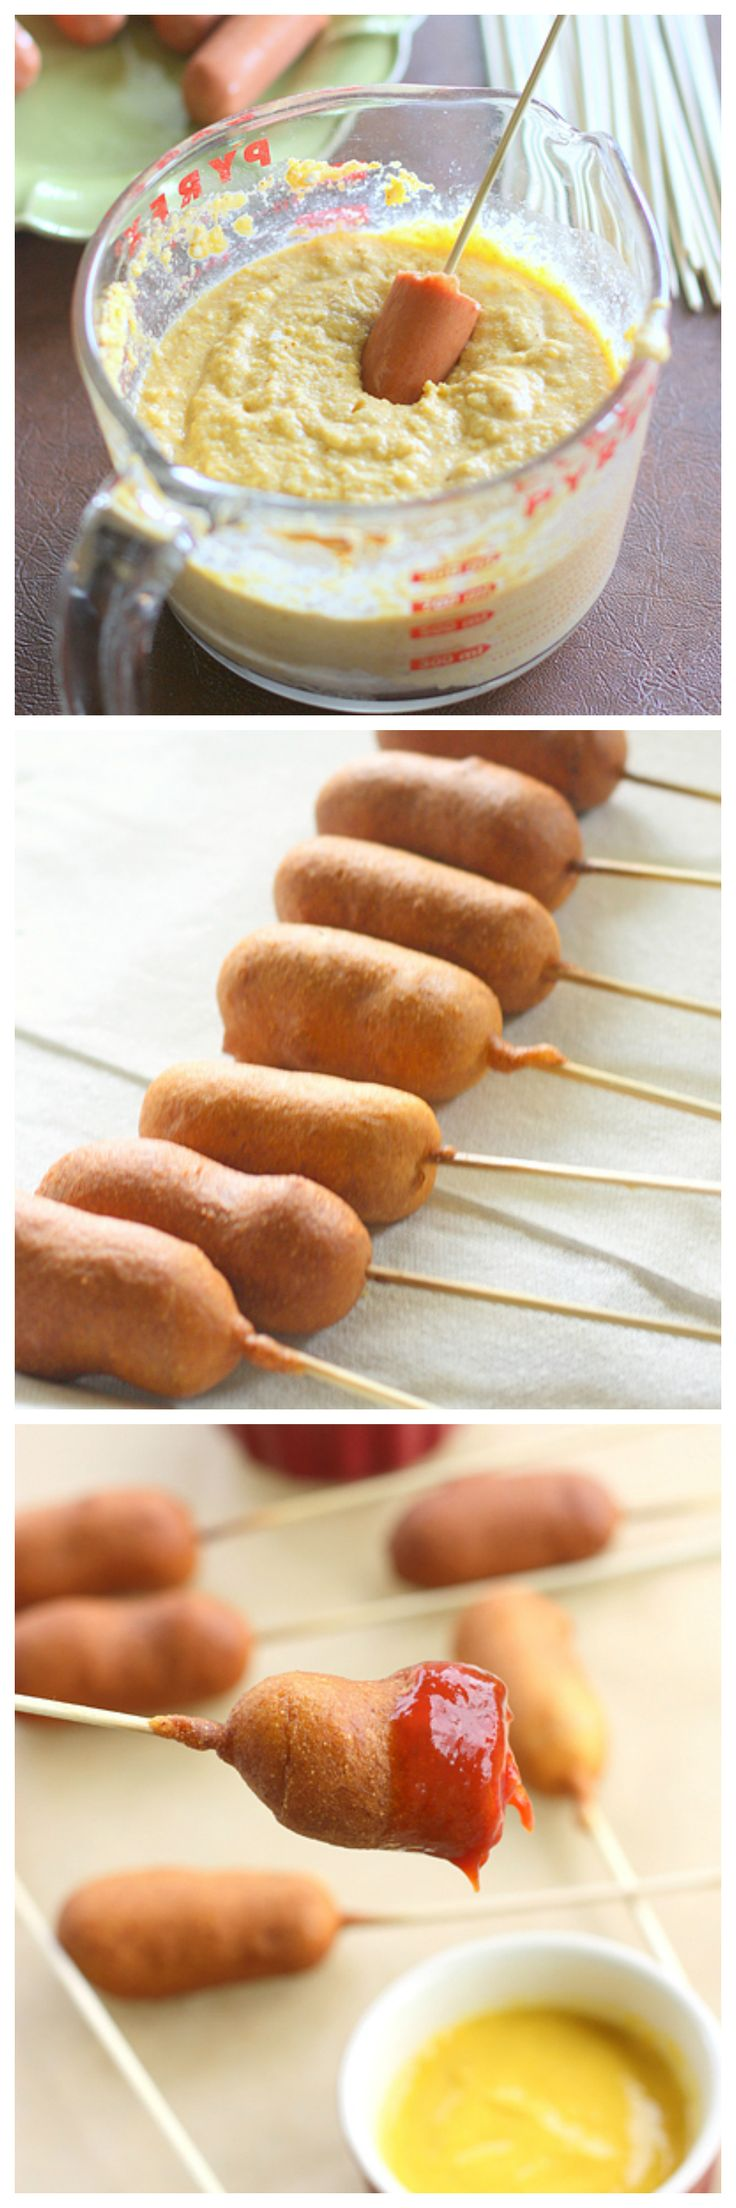 Easy Corn Dogs on a Stick